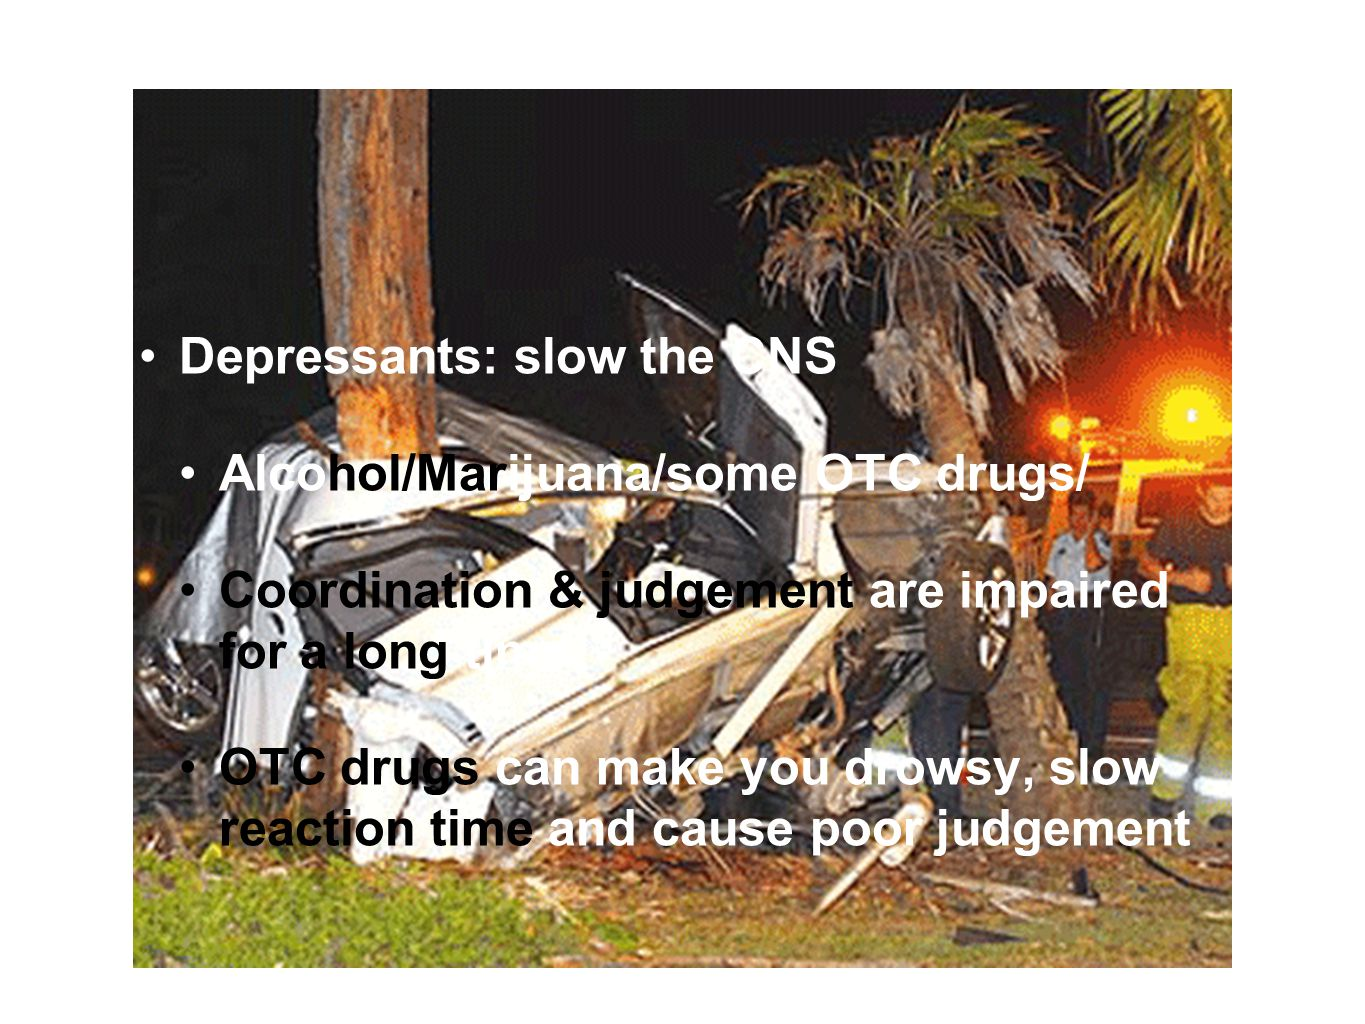 Drugs and Driving Depressants: slow the CNS Alcohol/Marijuana/some OTC drugs/ Coordination & judgement are impaired for a long time OTC drugs can make you drowsy, slow reaction time and cause poor judgement